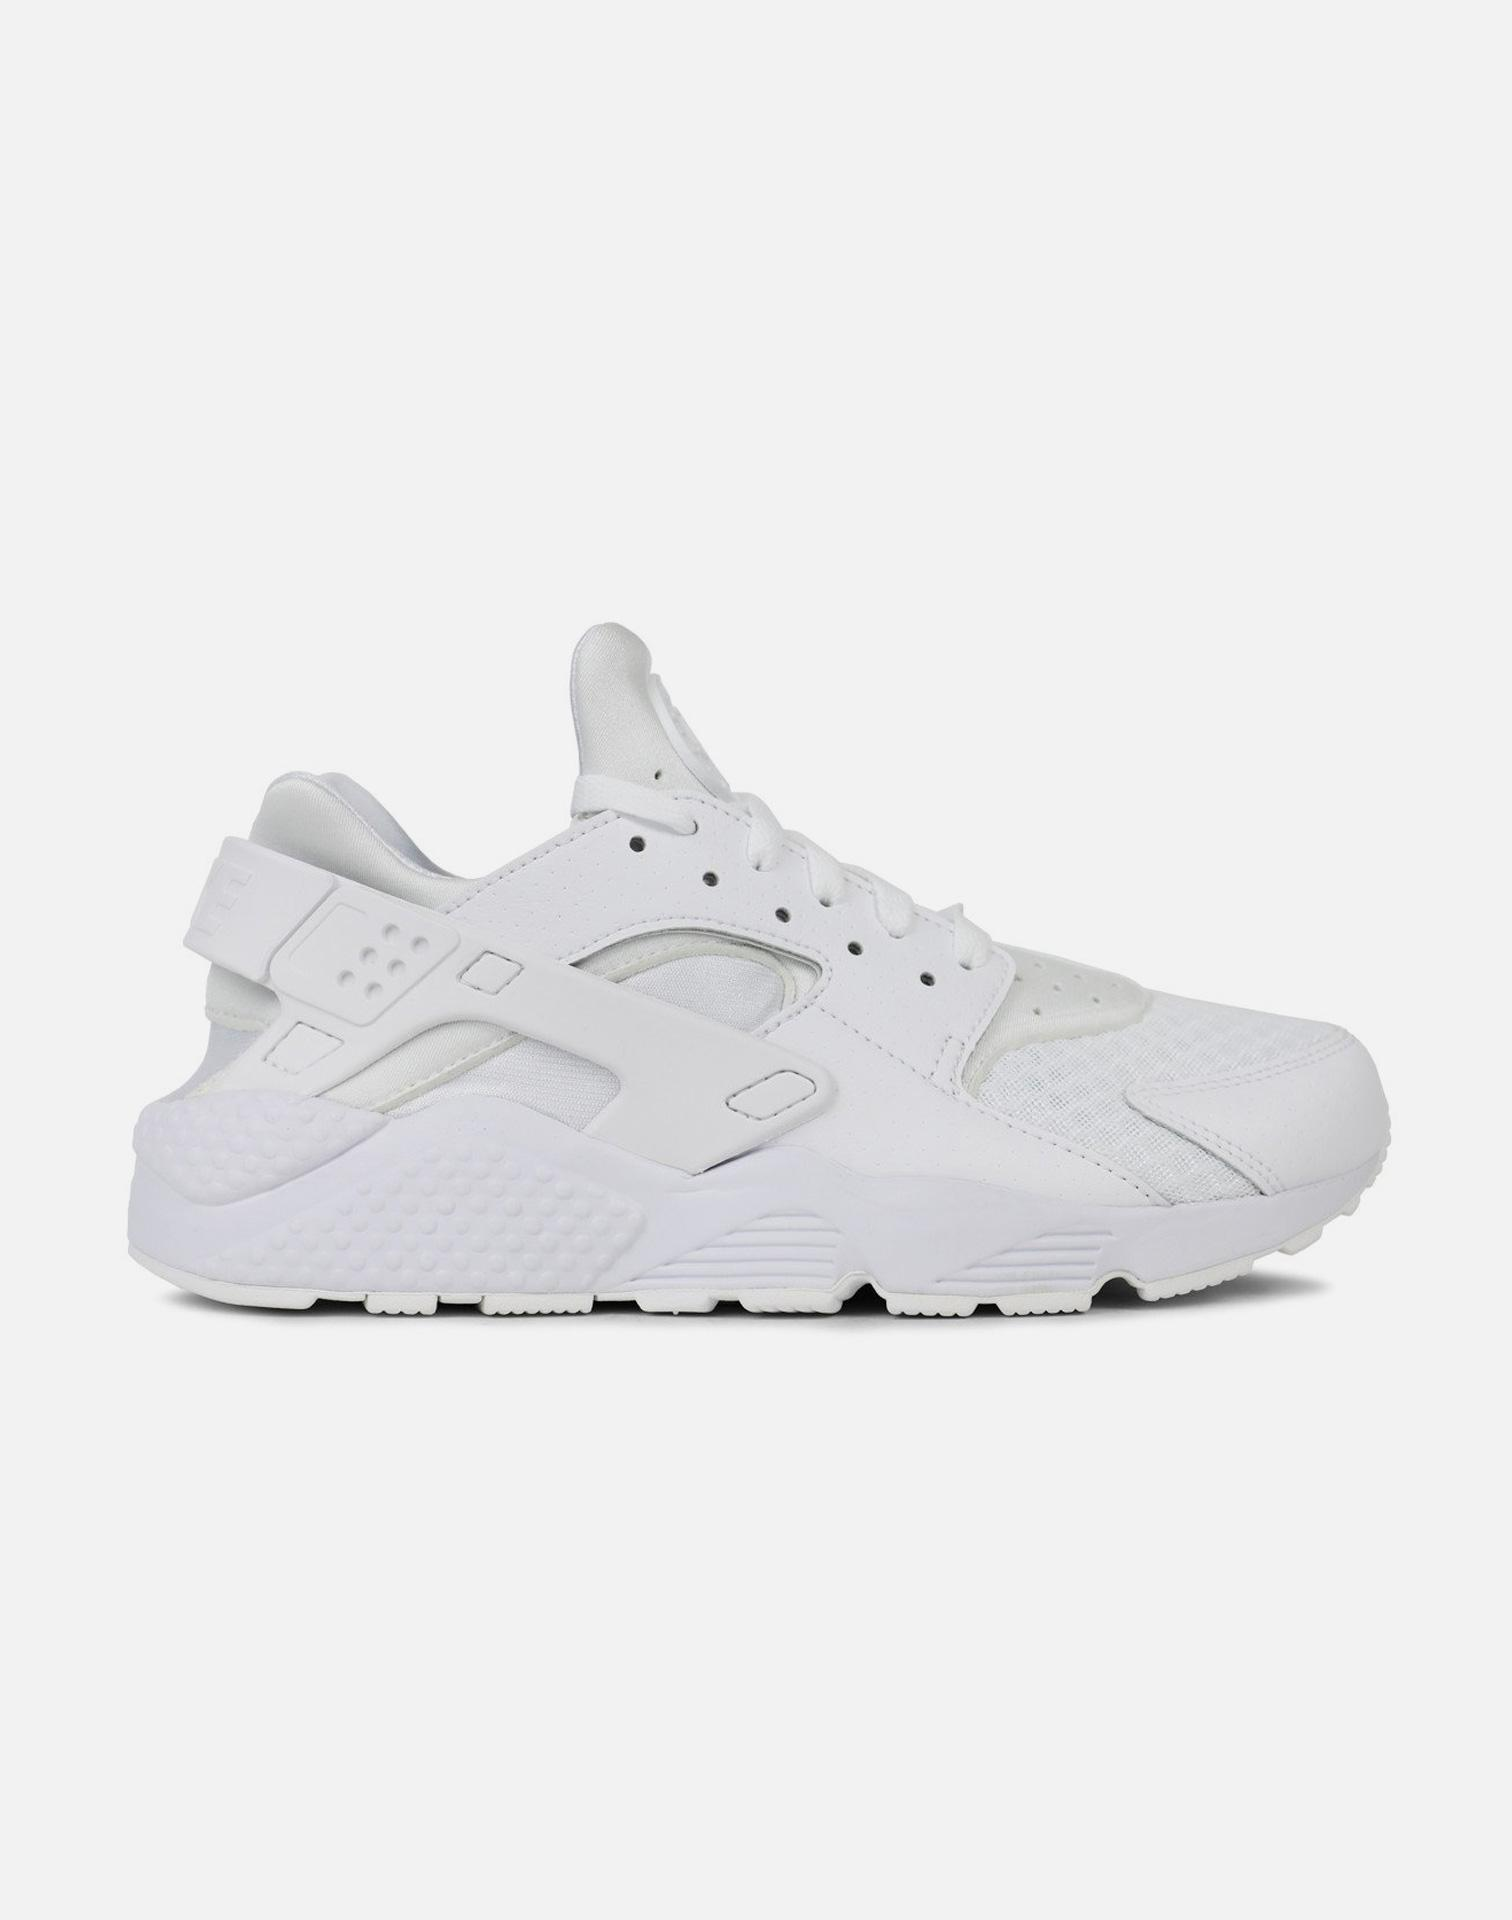 45e345d4a5a0 Lyst - Nike Air Huarache-white Pure Platinum in White for Men